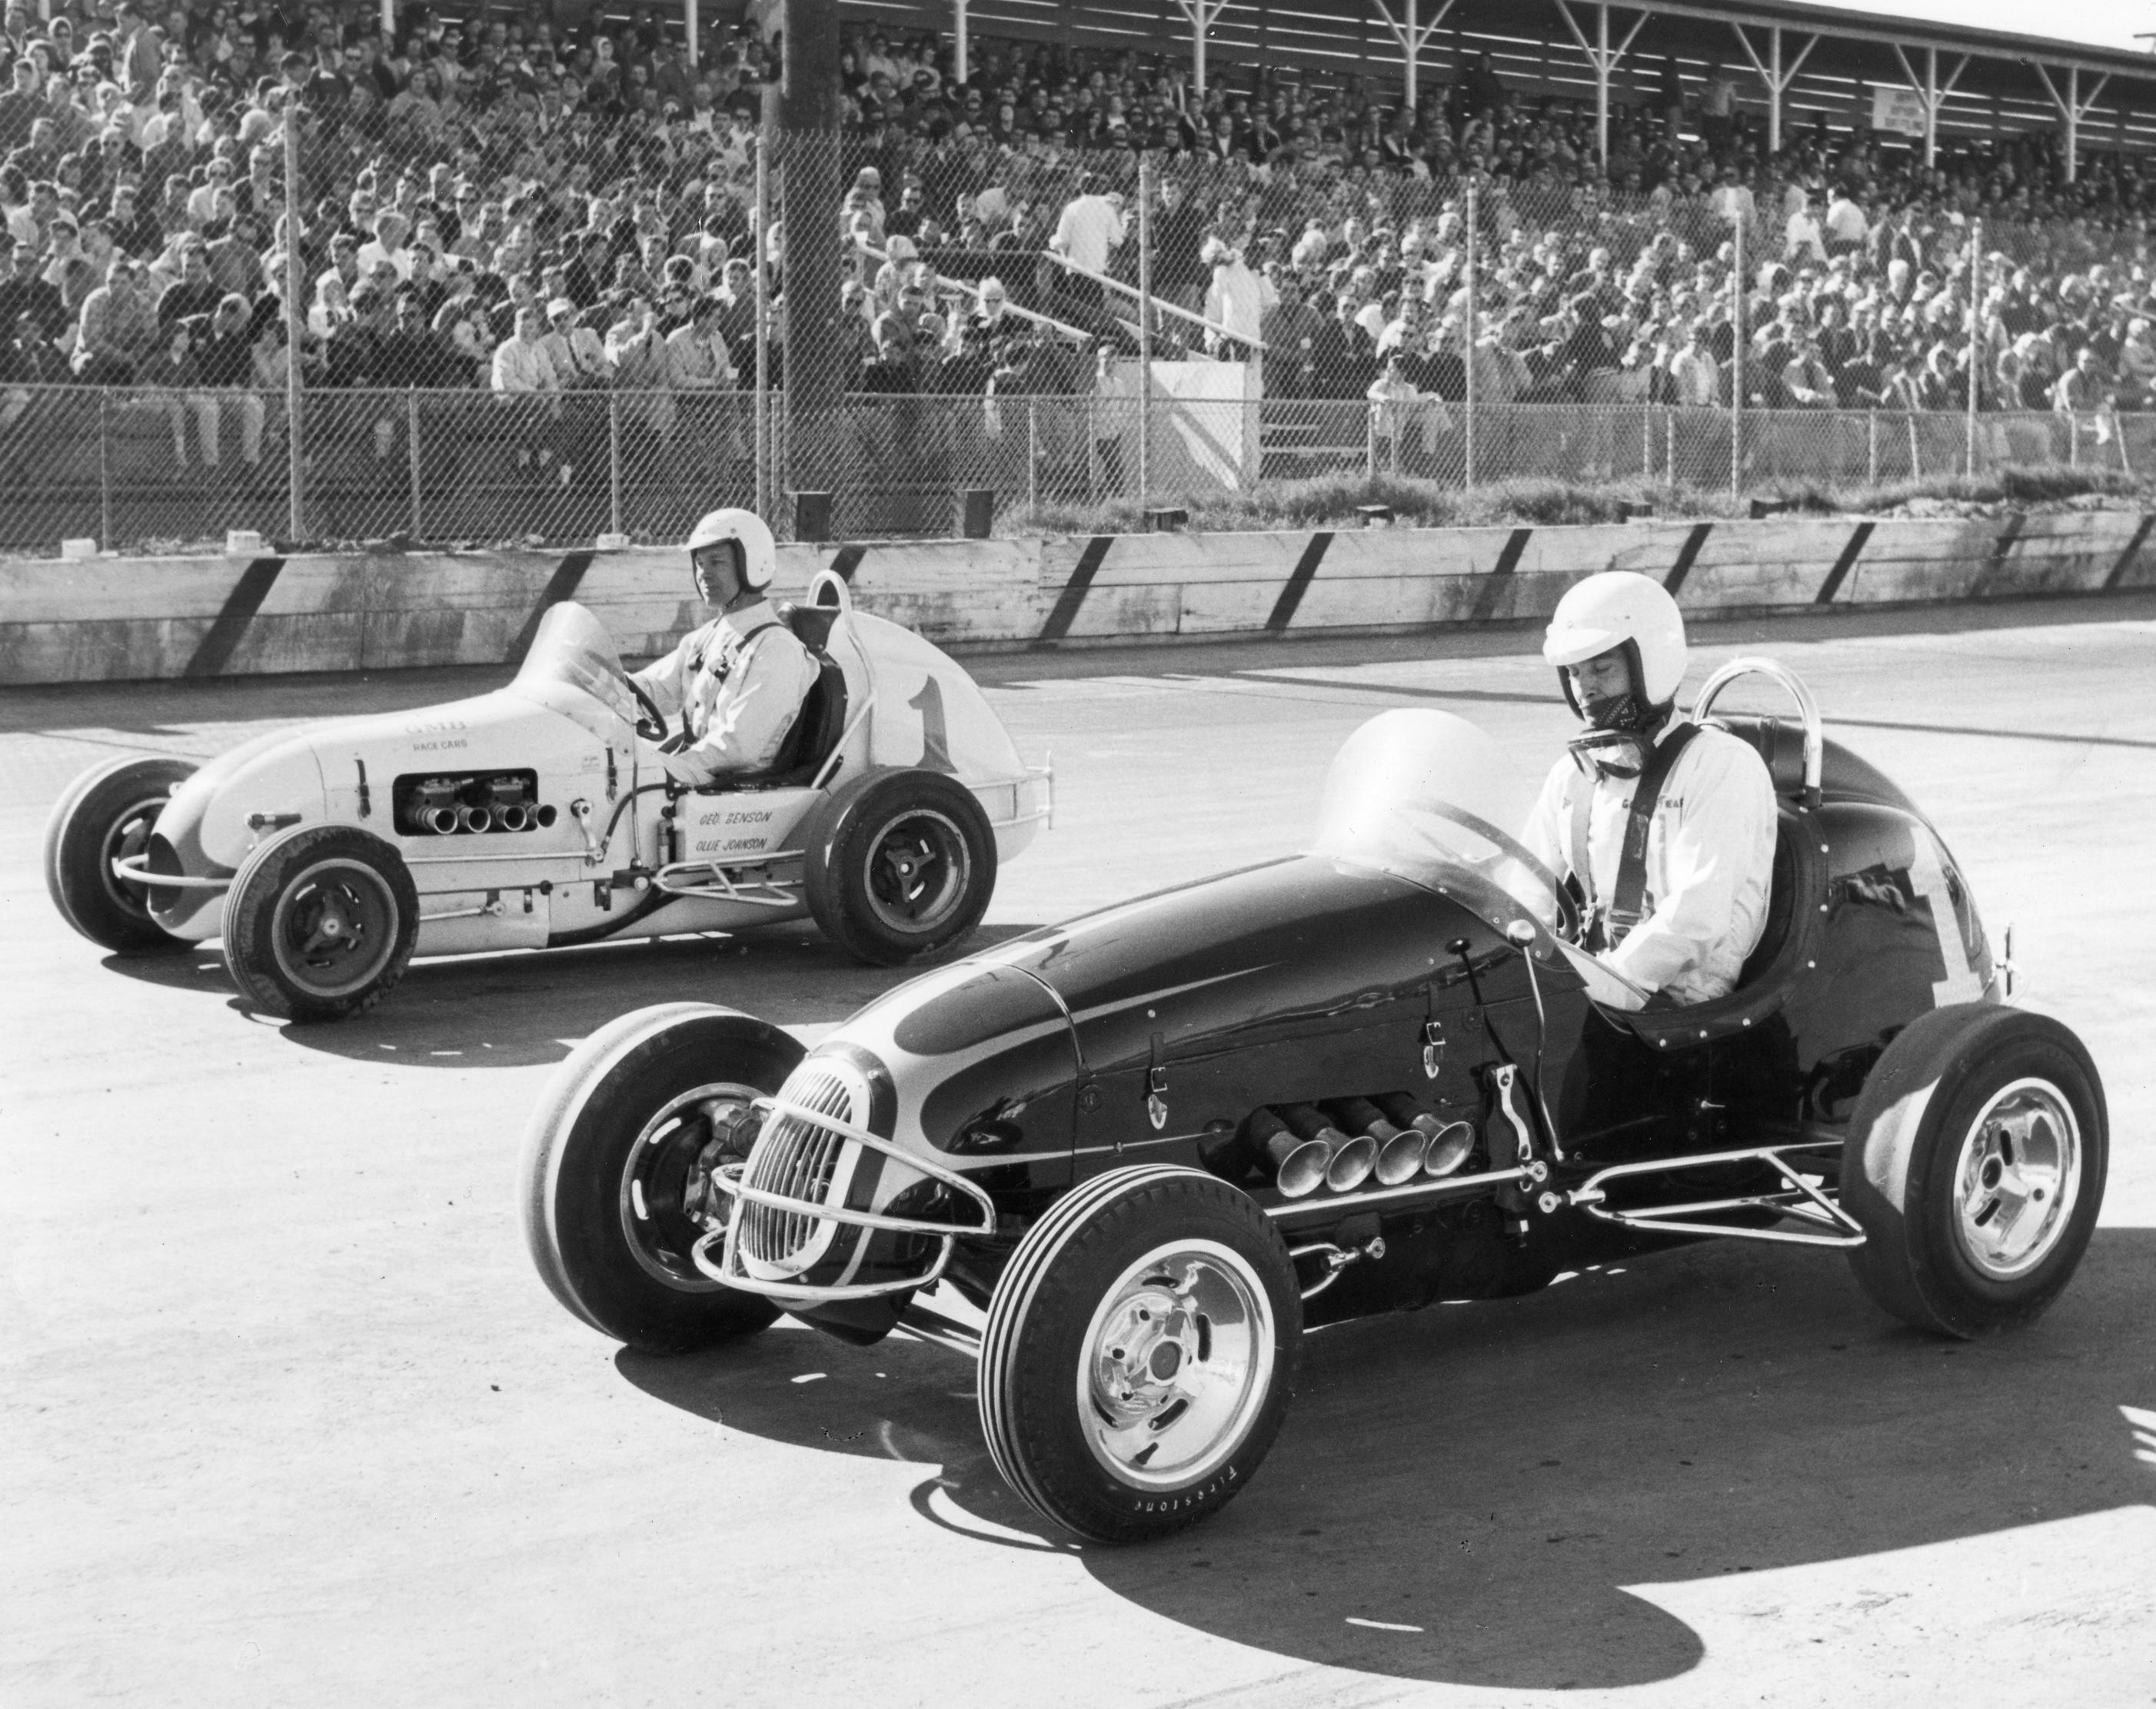 13 1967 #1 G. Benson, #1 B. Vukovitch Line up for Trophy Dash  San Jose Speedway